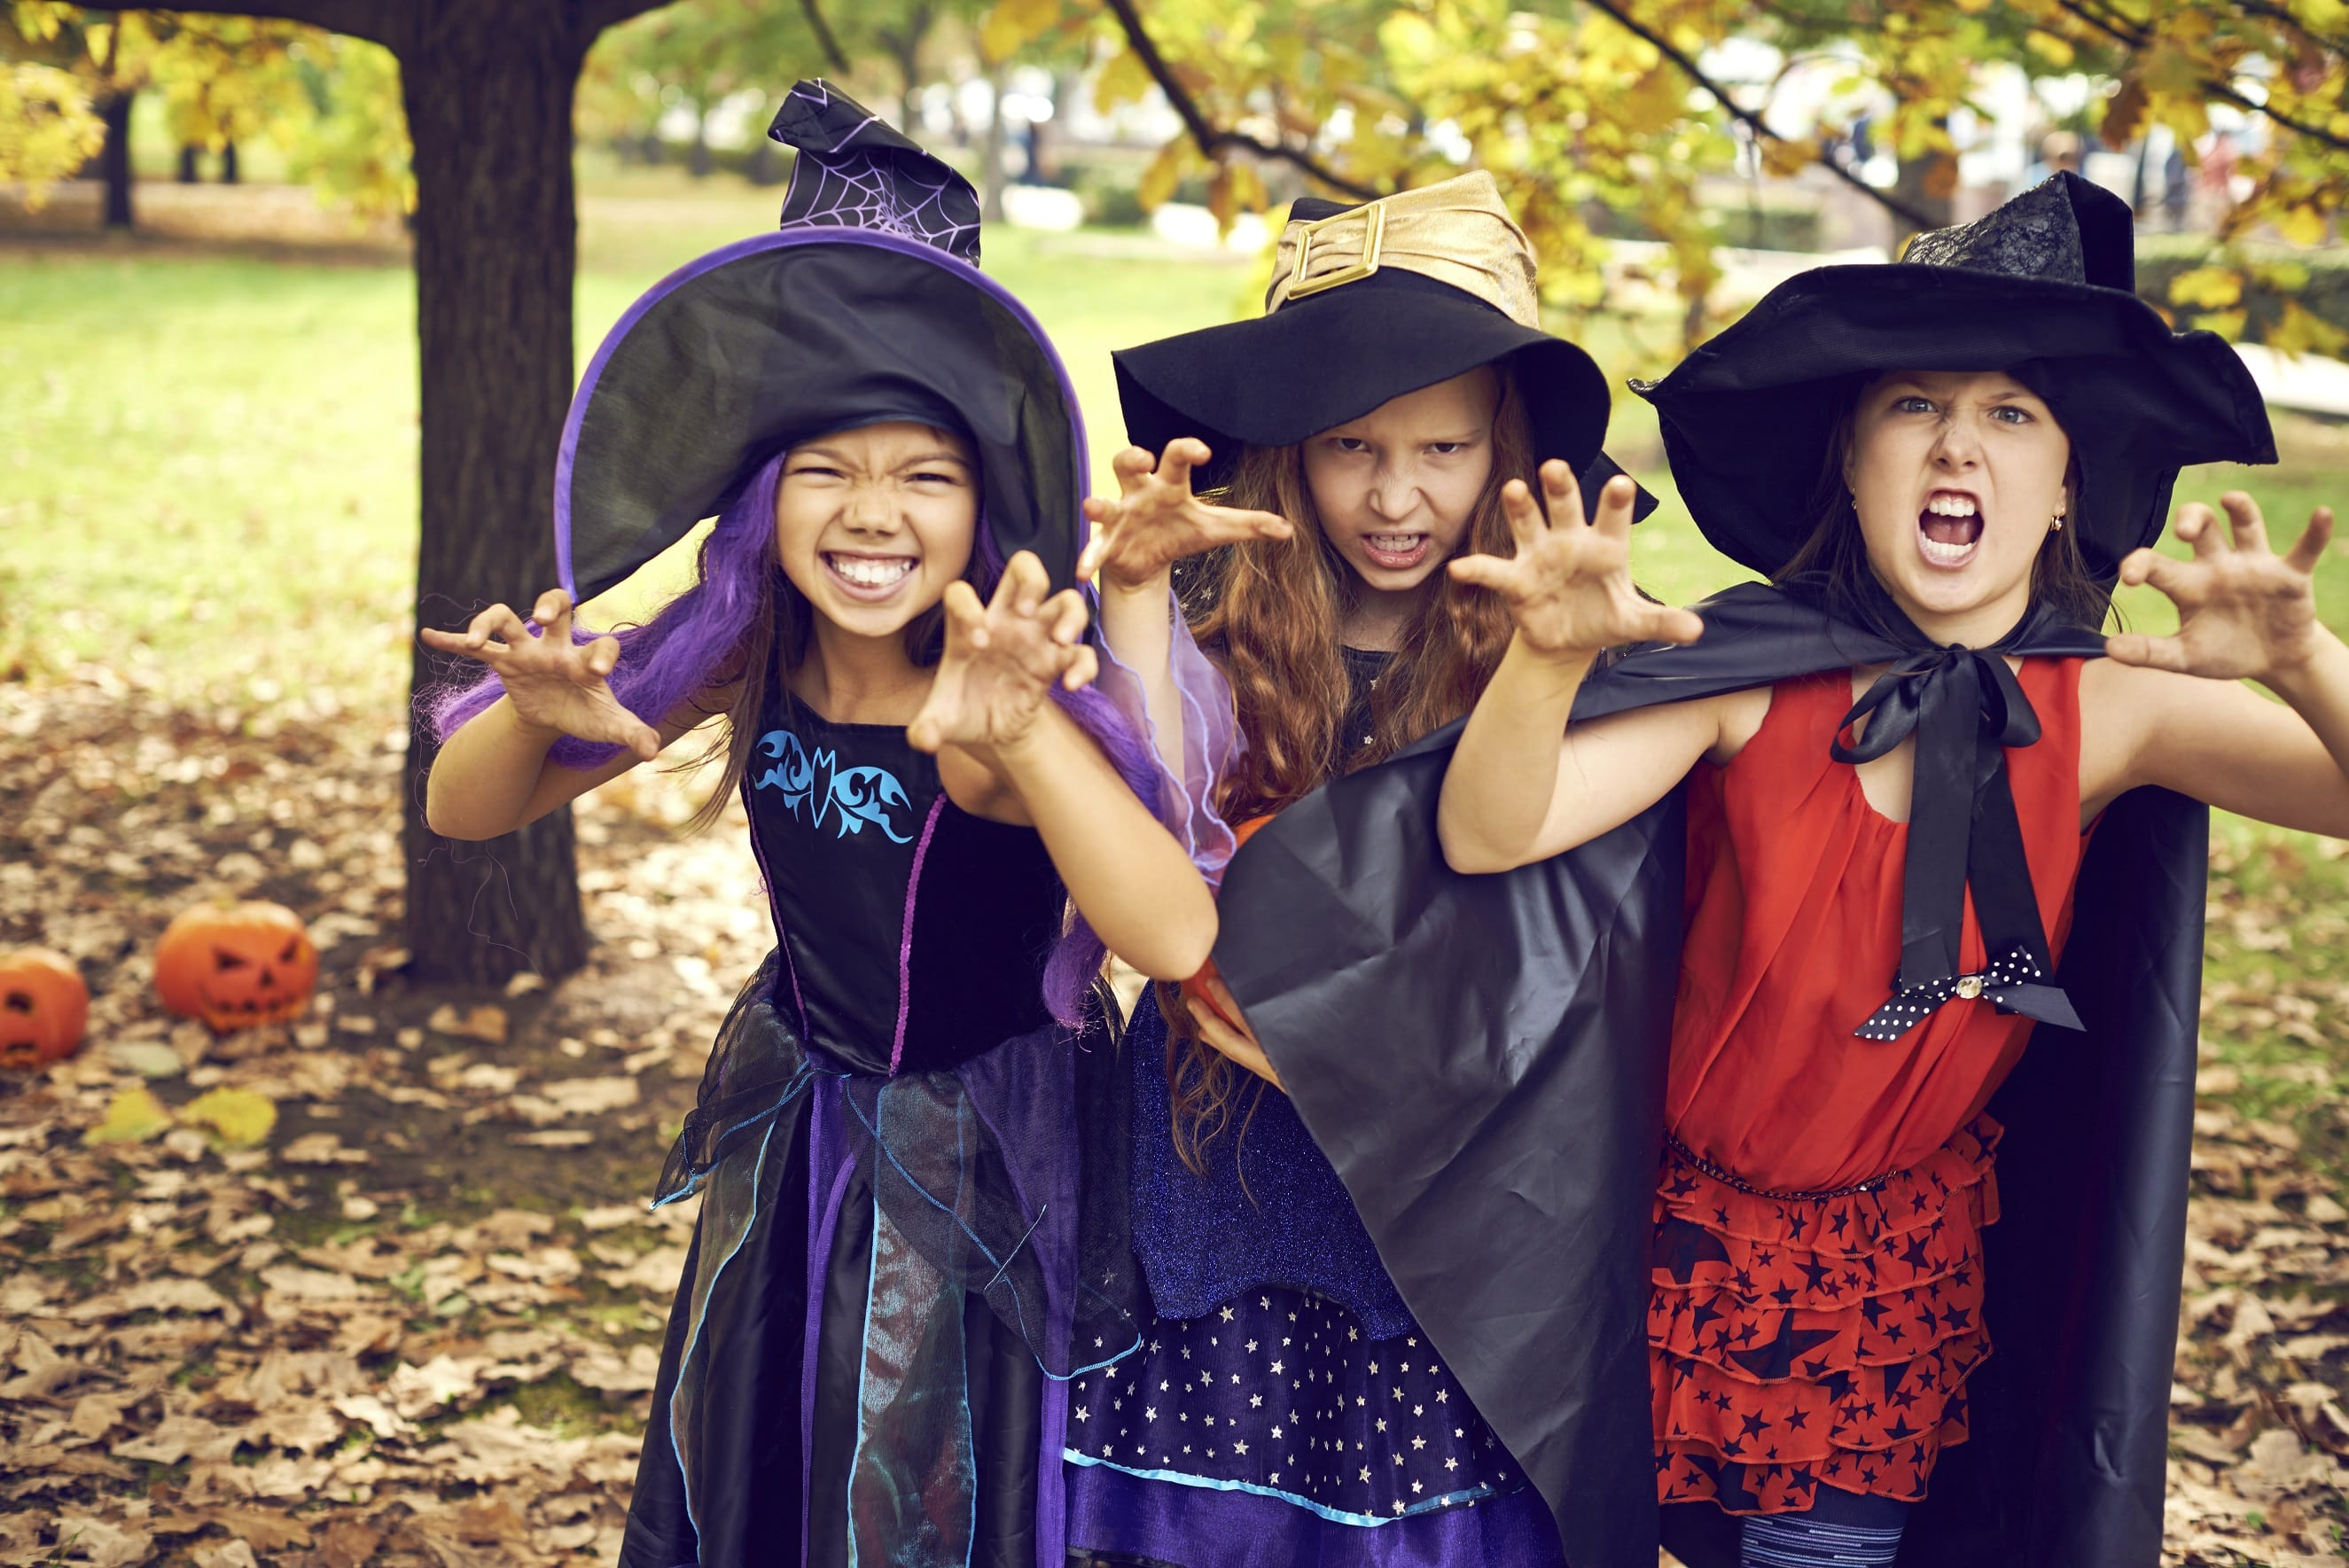 Treat Giving Expected To Be Up This Halloween - Delta Dental